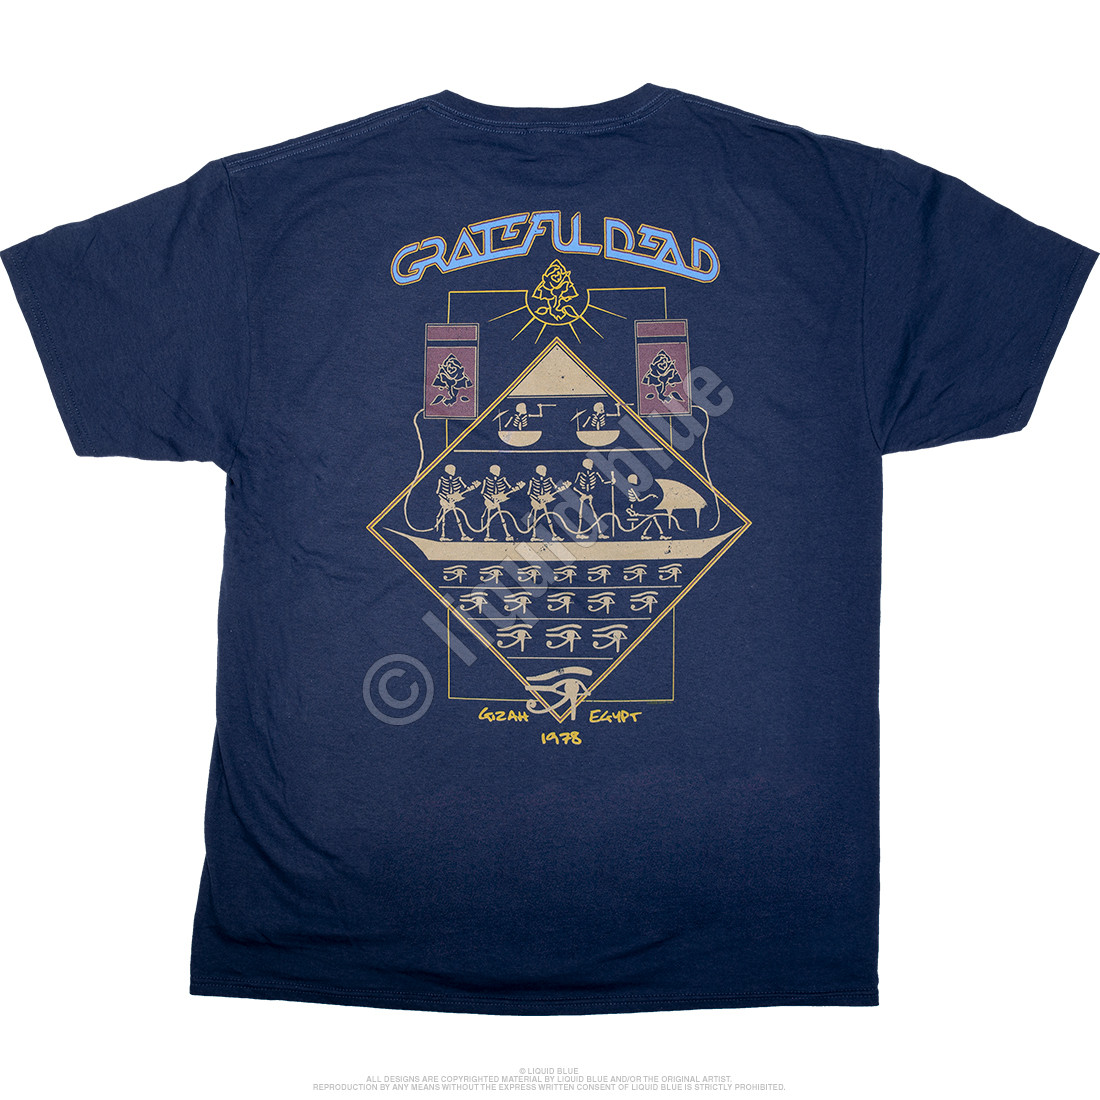 Egyptian Crew Navy T-Shirt